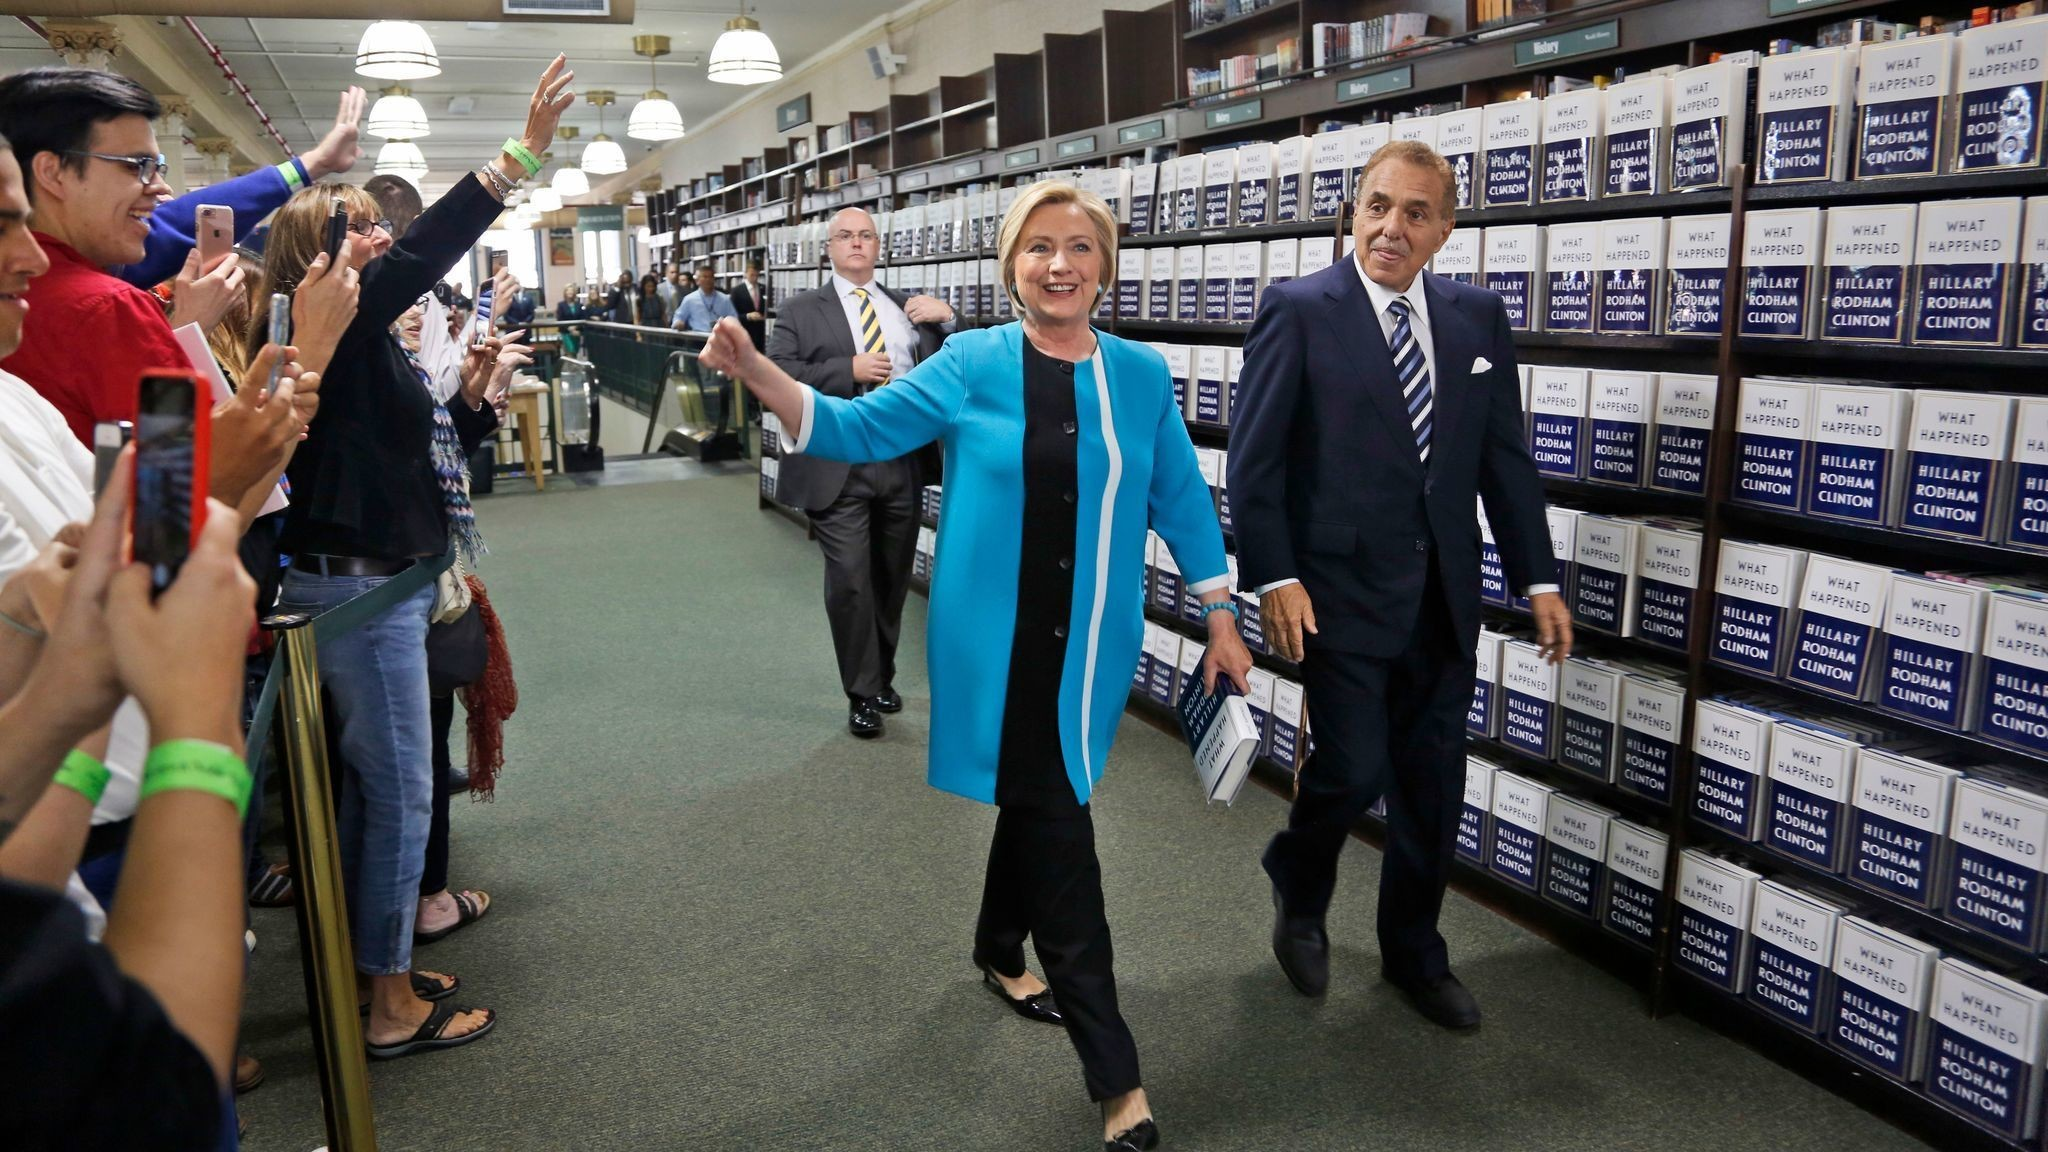 Hillary Clinton, rehashing her loss in a new book, emerges to  less-than-enthusiastic reviews – LA Times